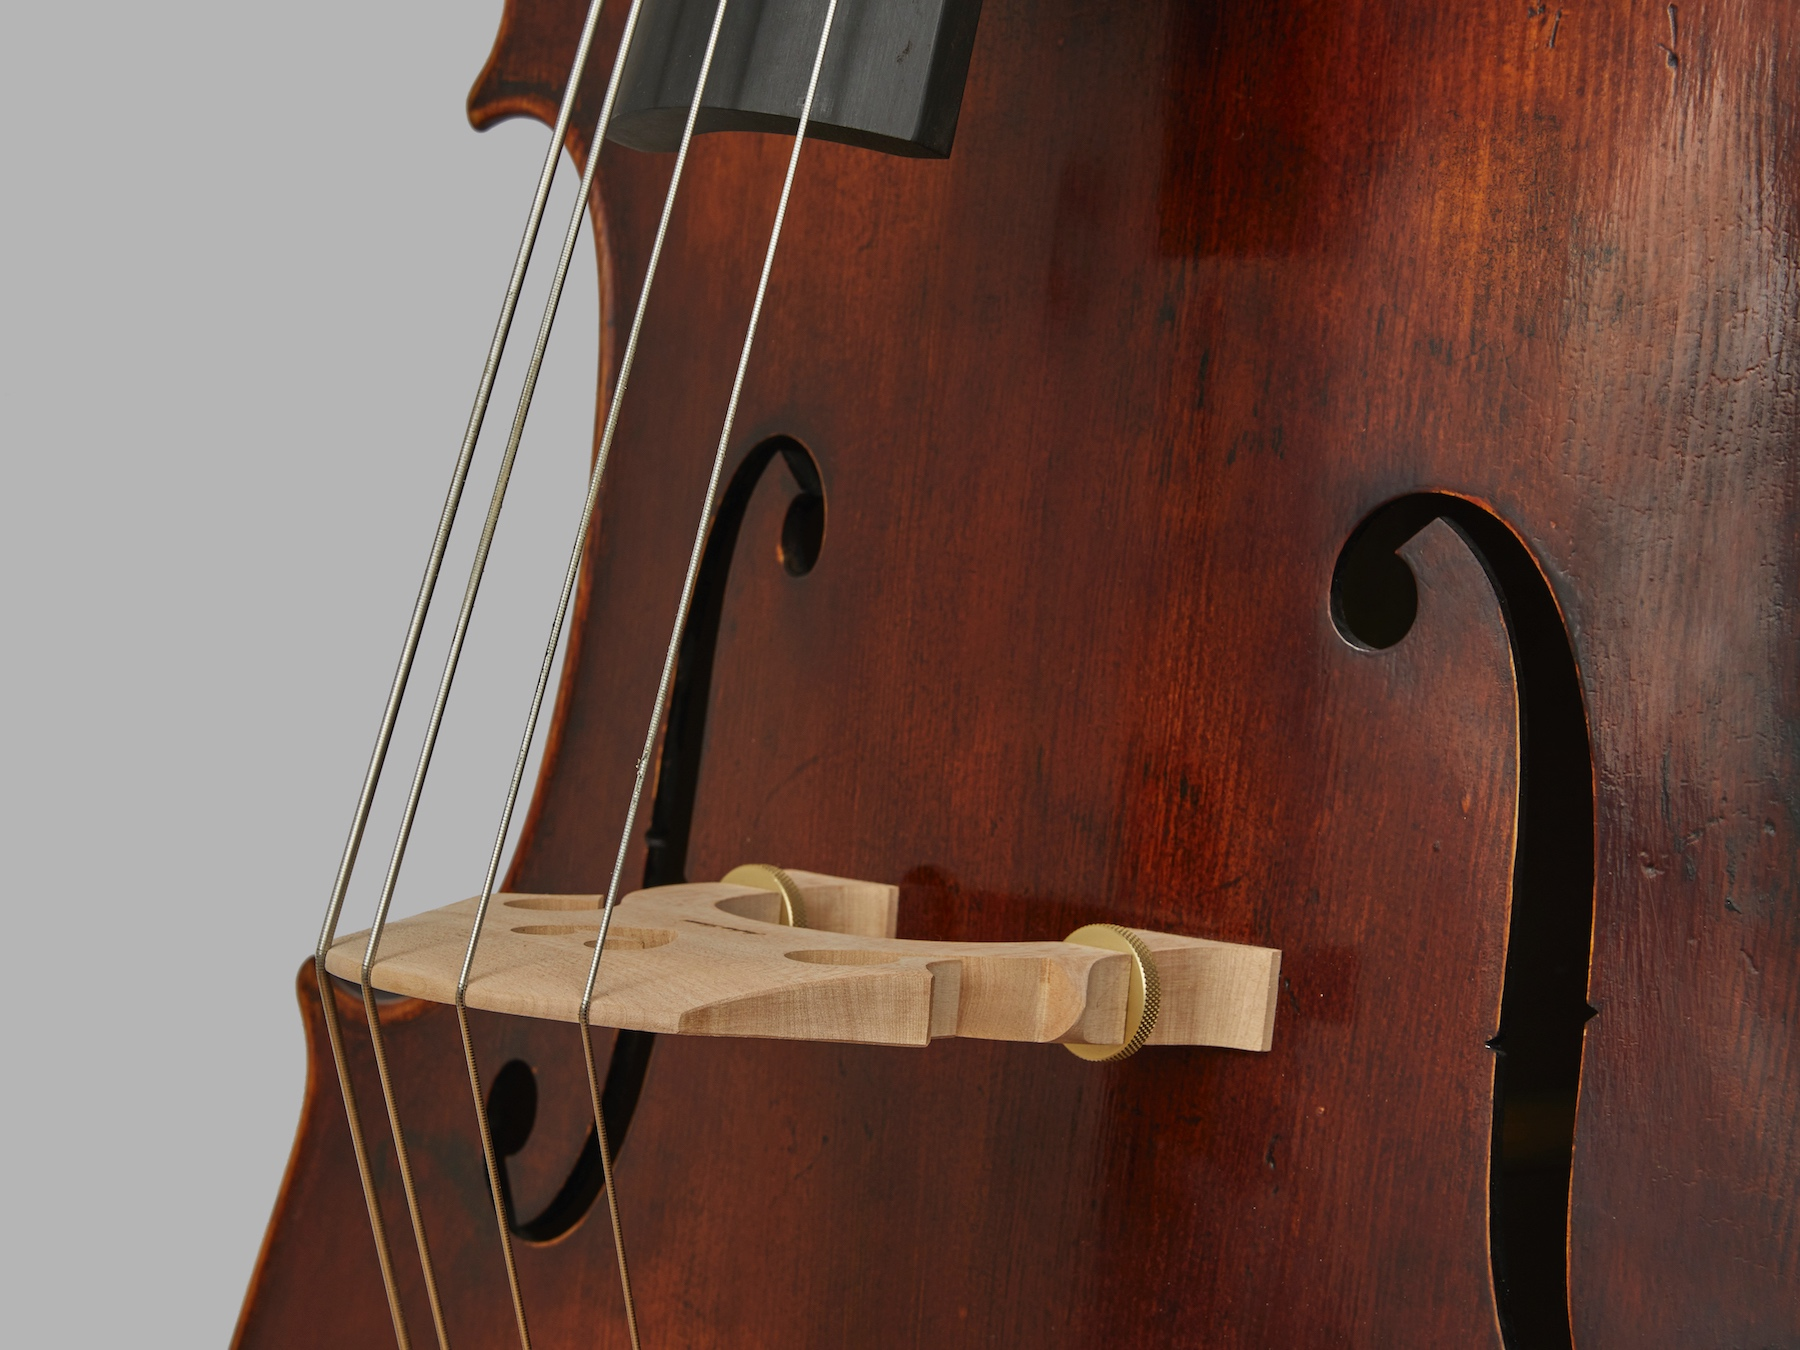 The 'Lovaszi' Bass - Learn More